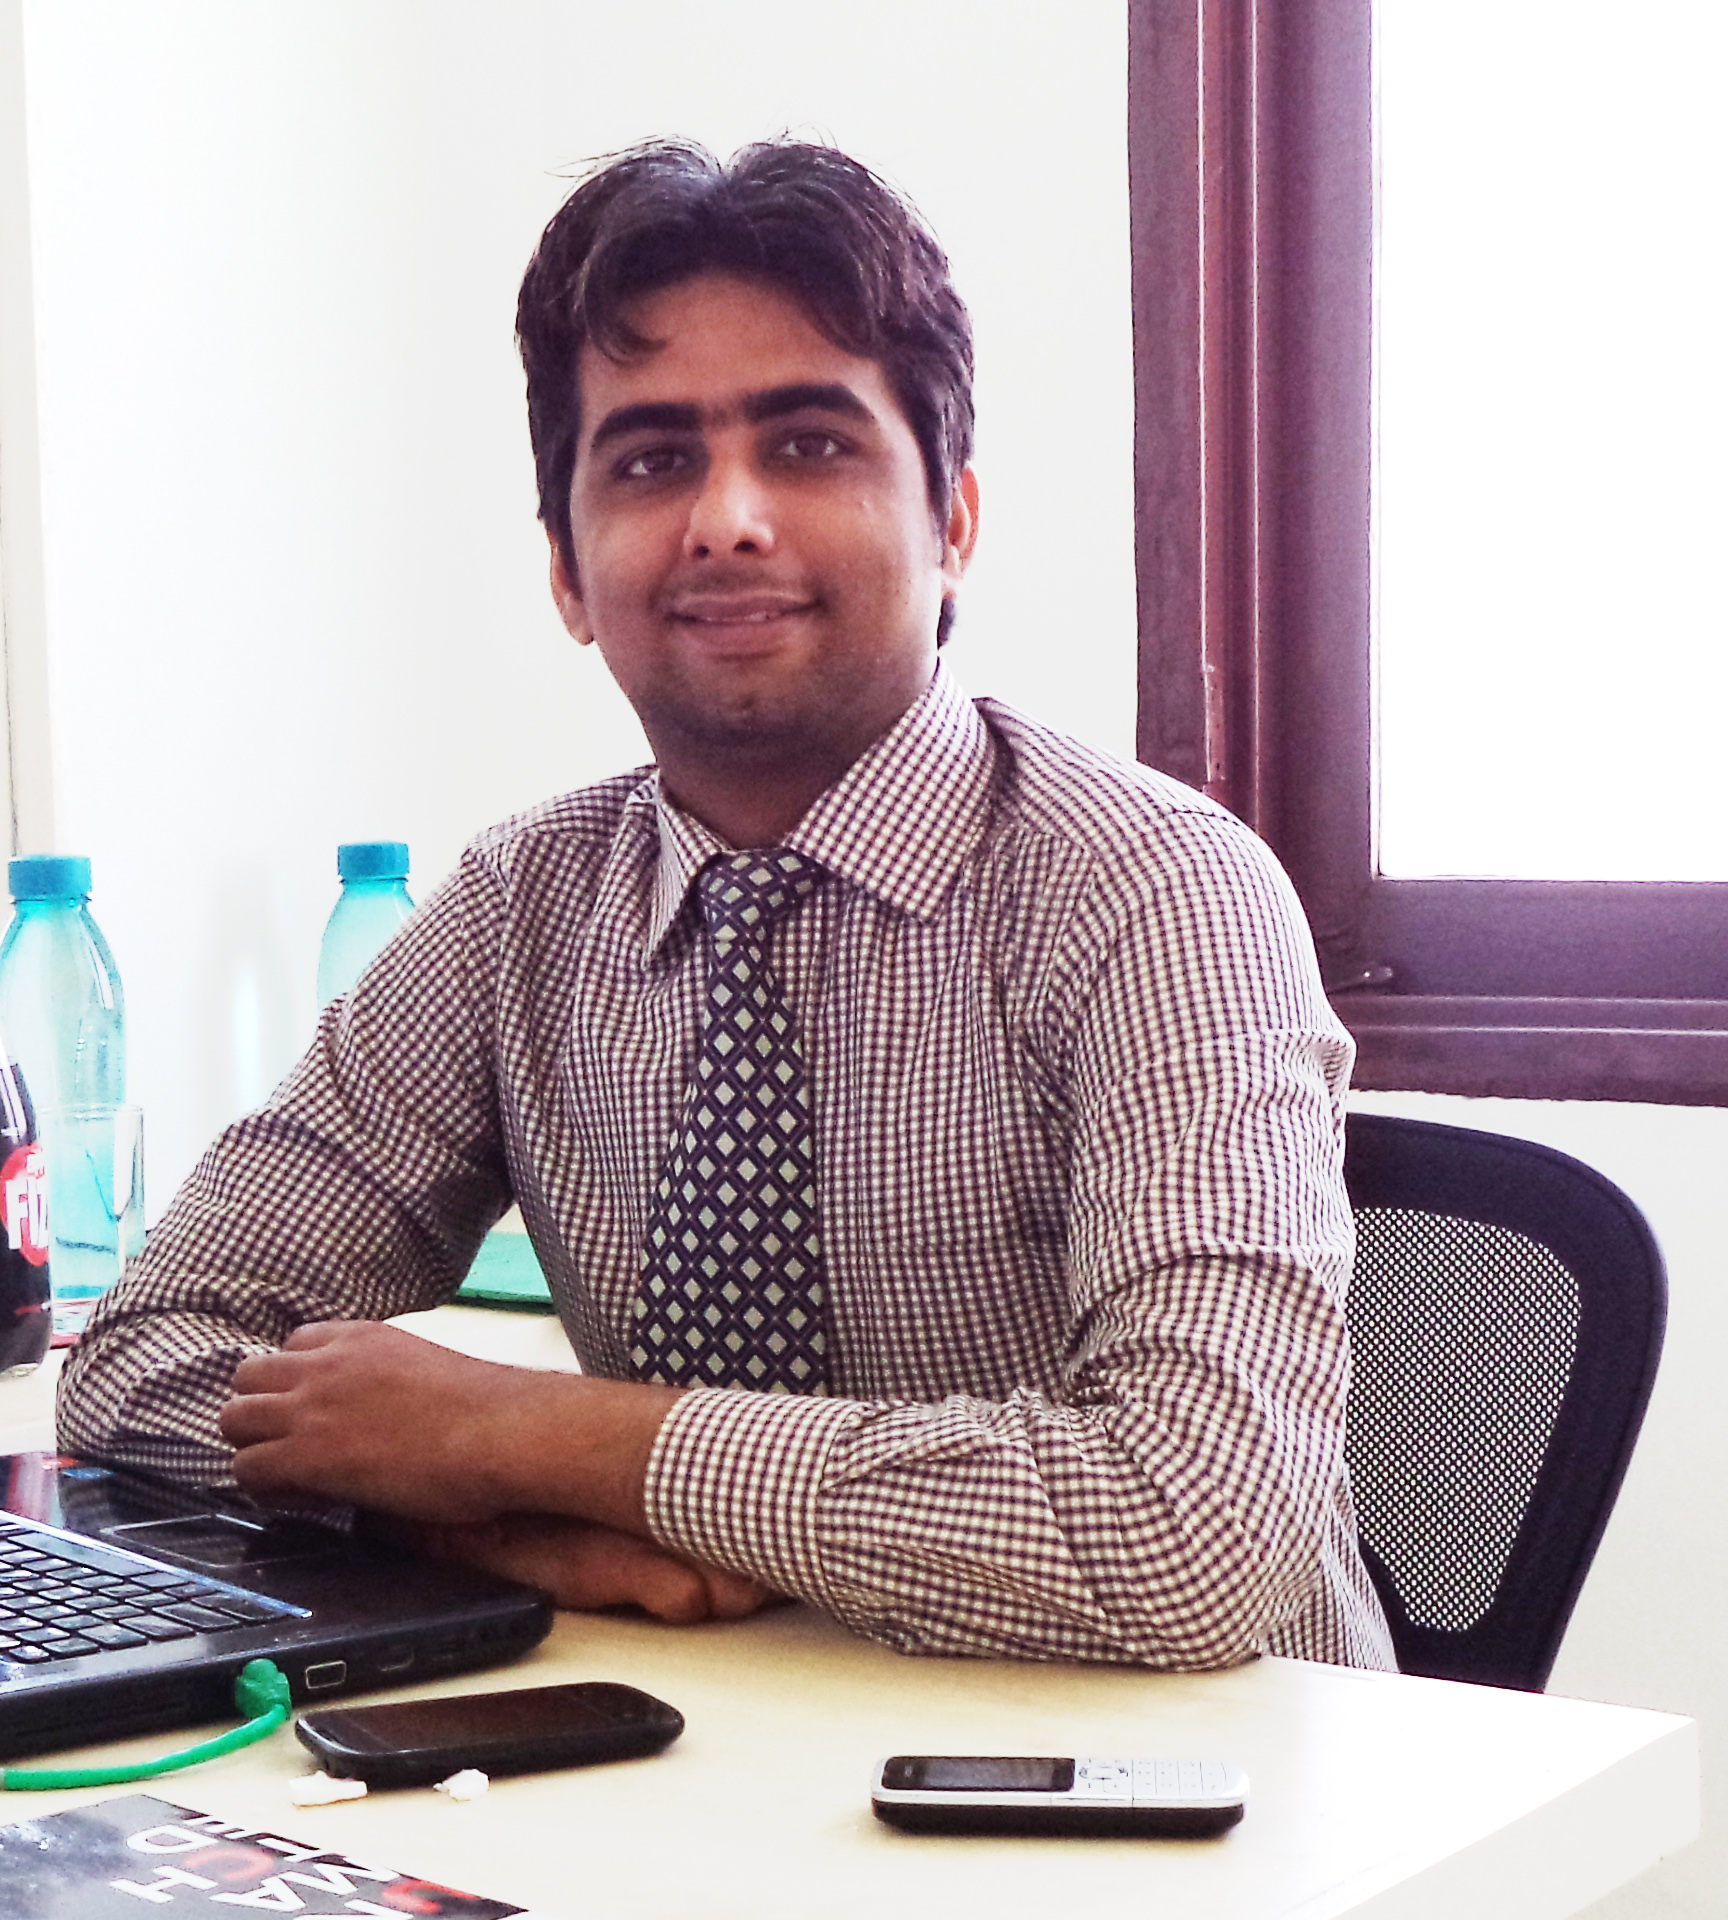 Nitin Saluja - Ph.D. (Engg). - Subject Matter Expert from Kolabtree